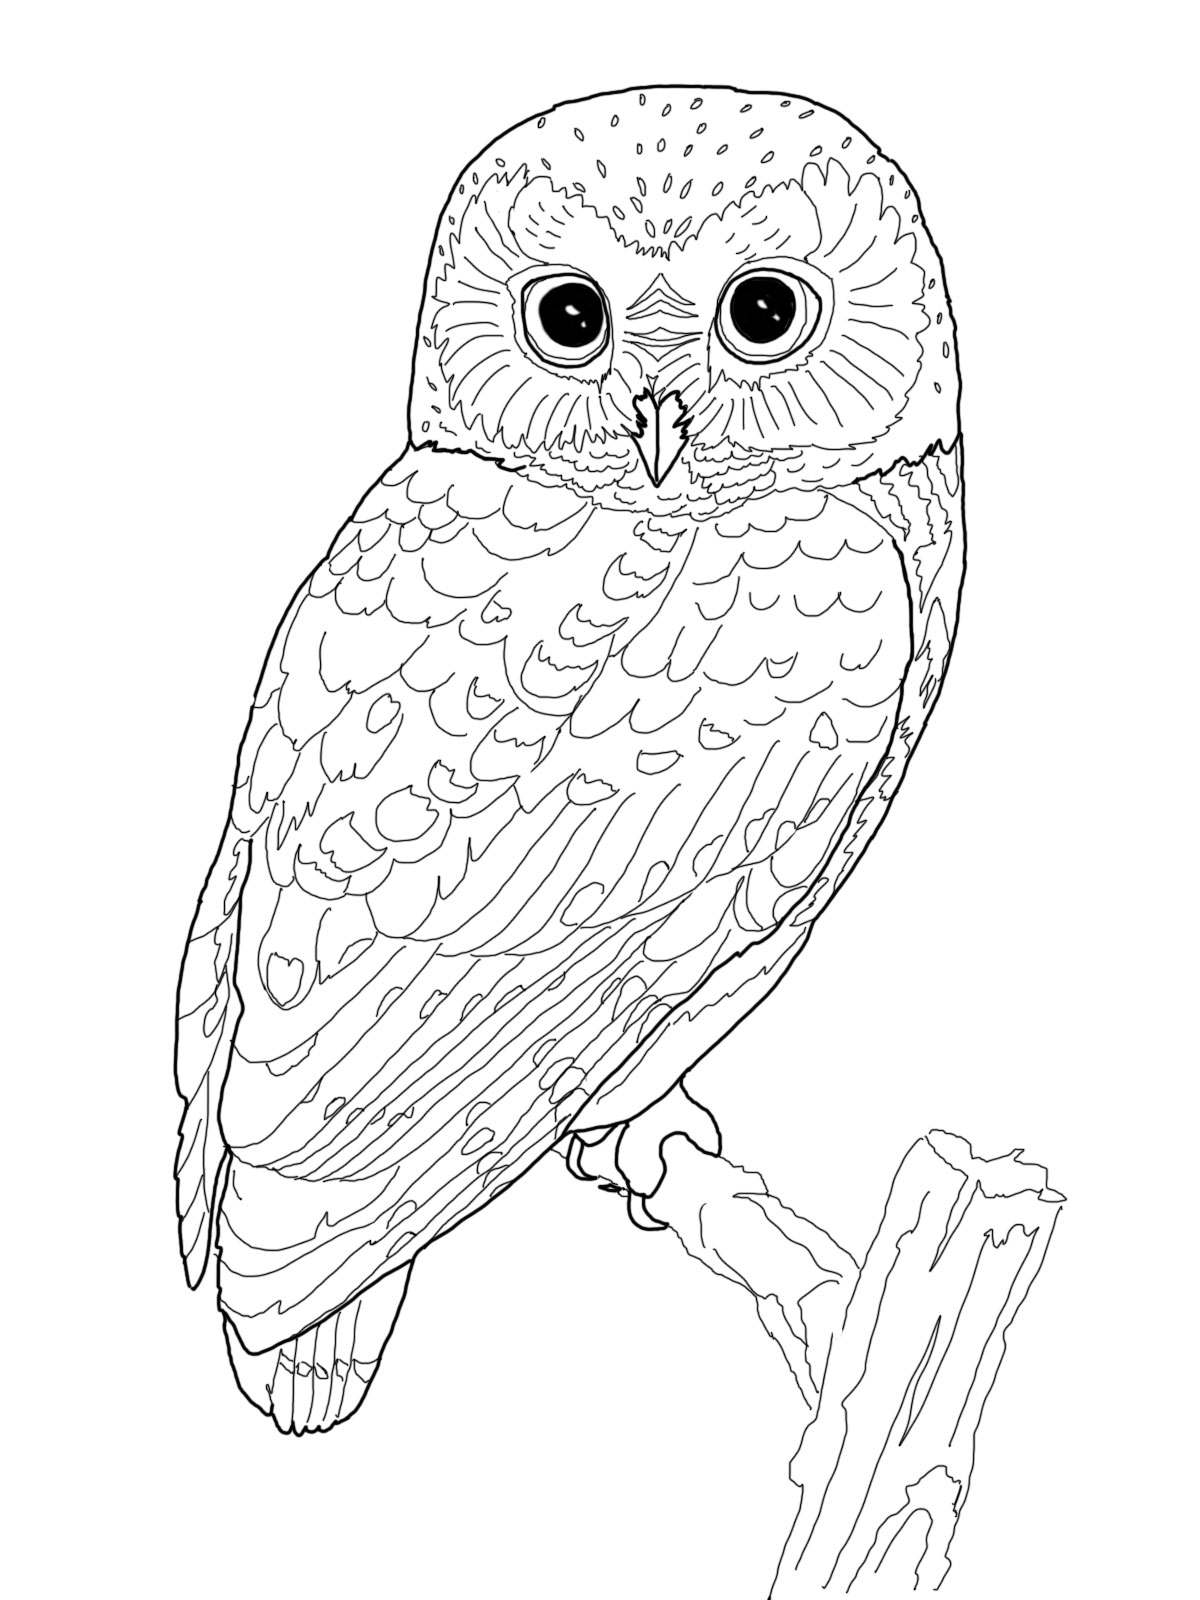 owl colouring picture owl coloring pages for adults free detailed owl coloring picture colouring owl